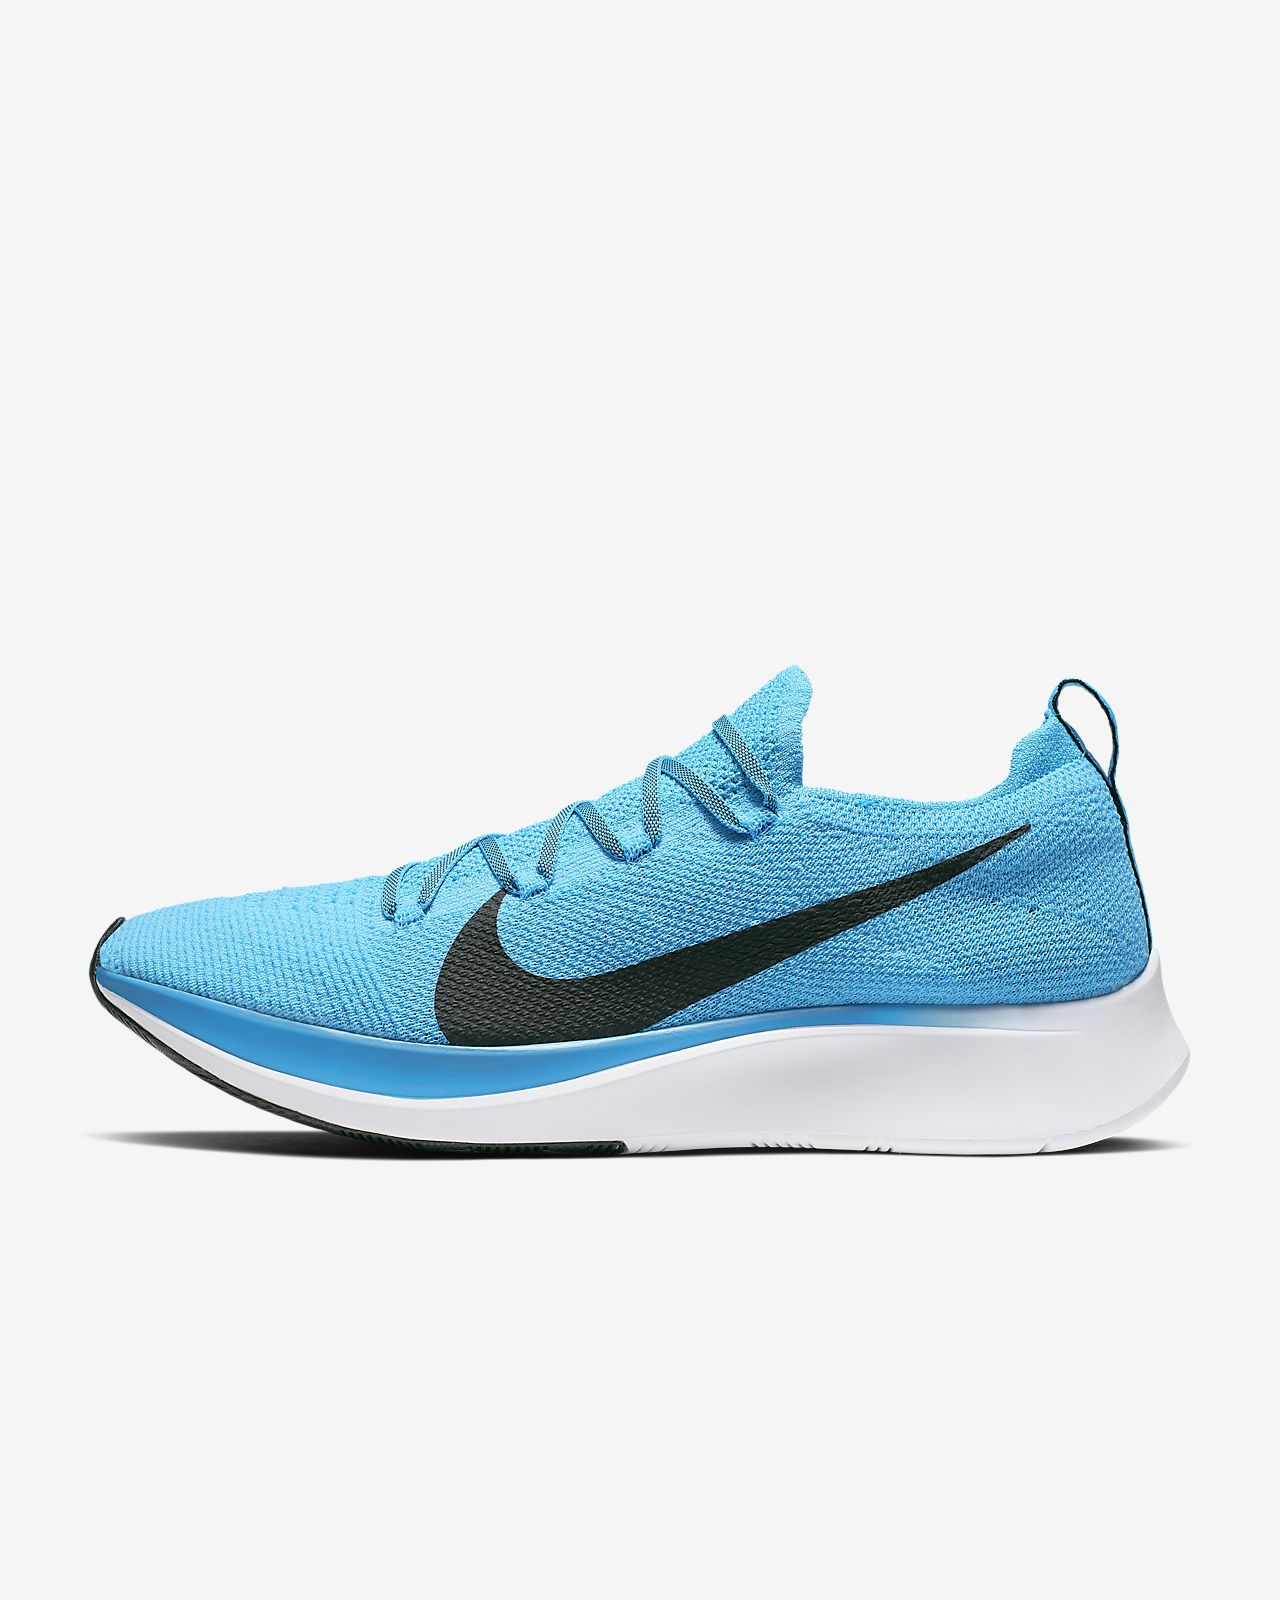 new style 25508 2985a ... Chaussure de running Nike Zoom Fly Flyknit pour Homme